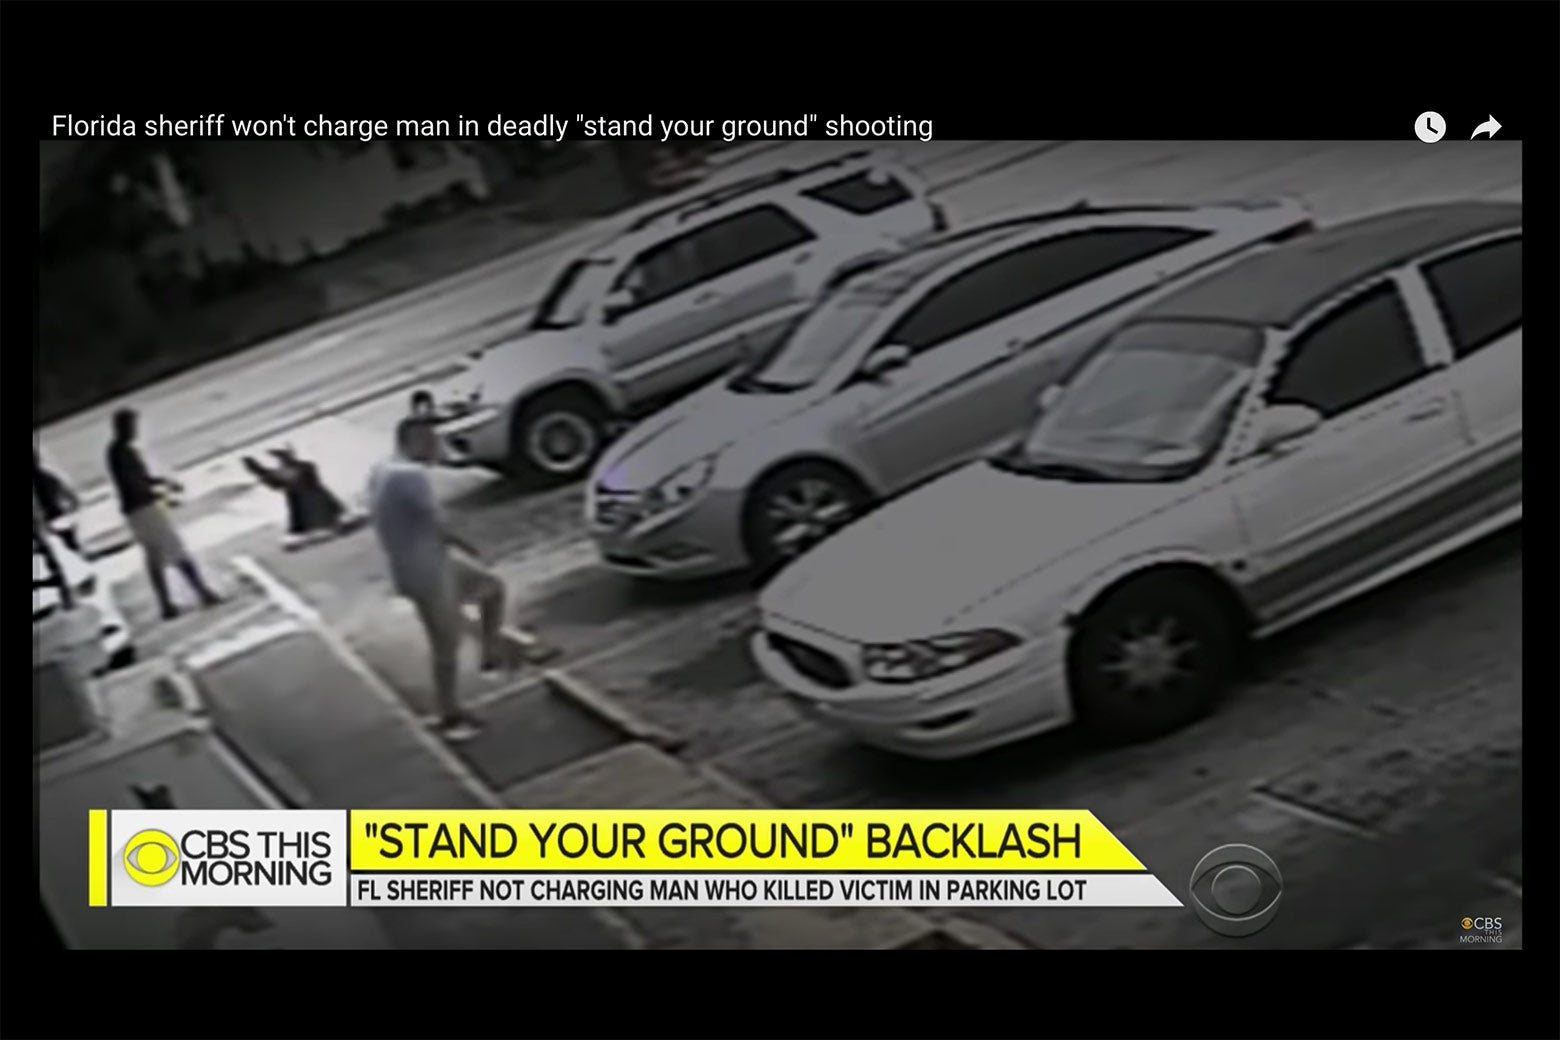 Footage of McGlocktin's shooting, as aired on CBS This Morning.